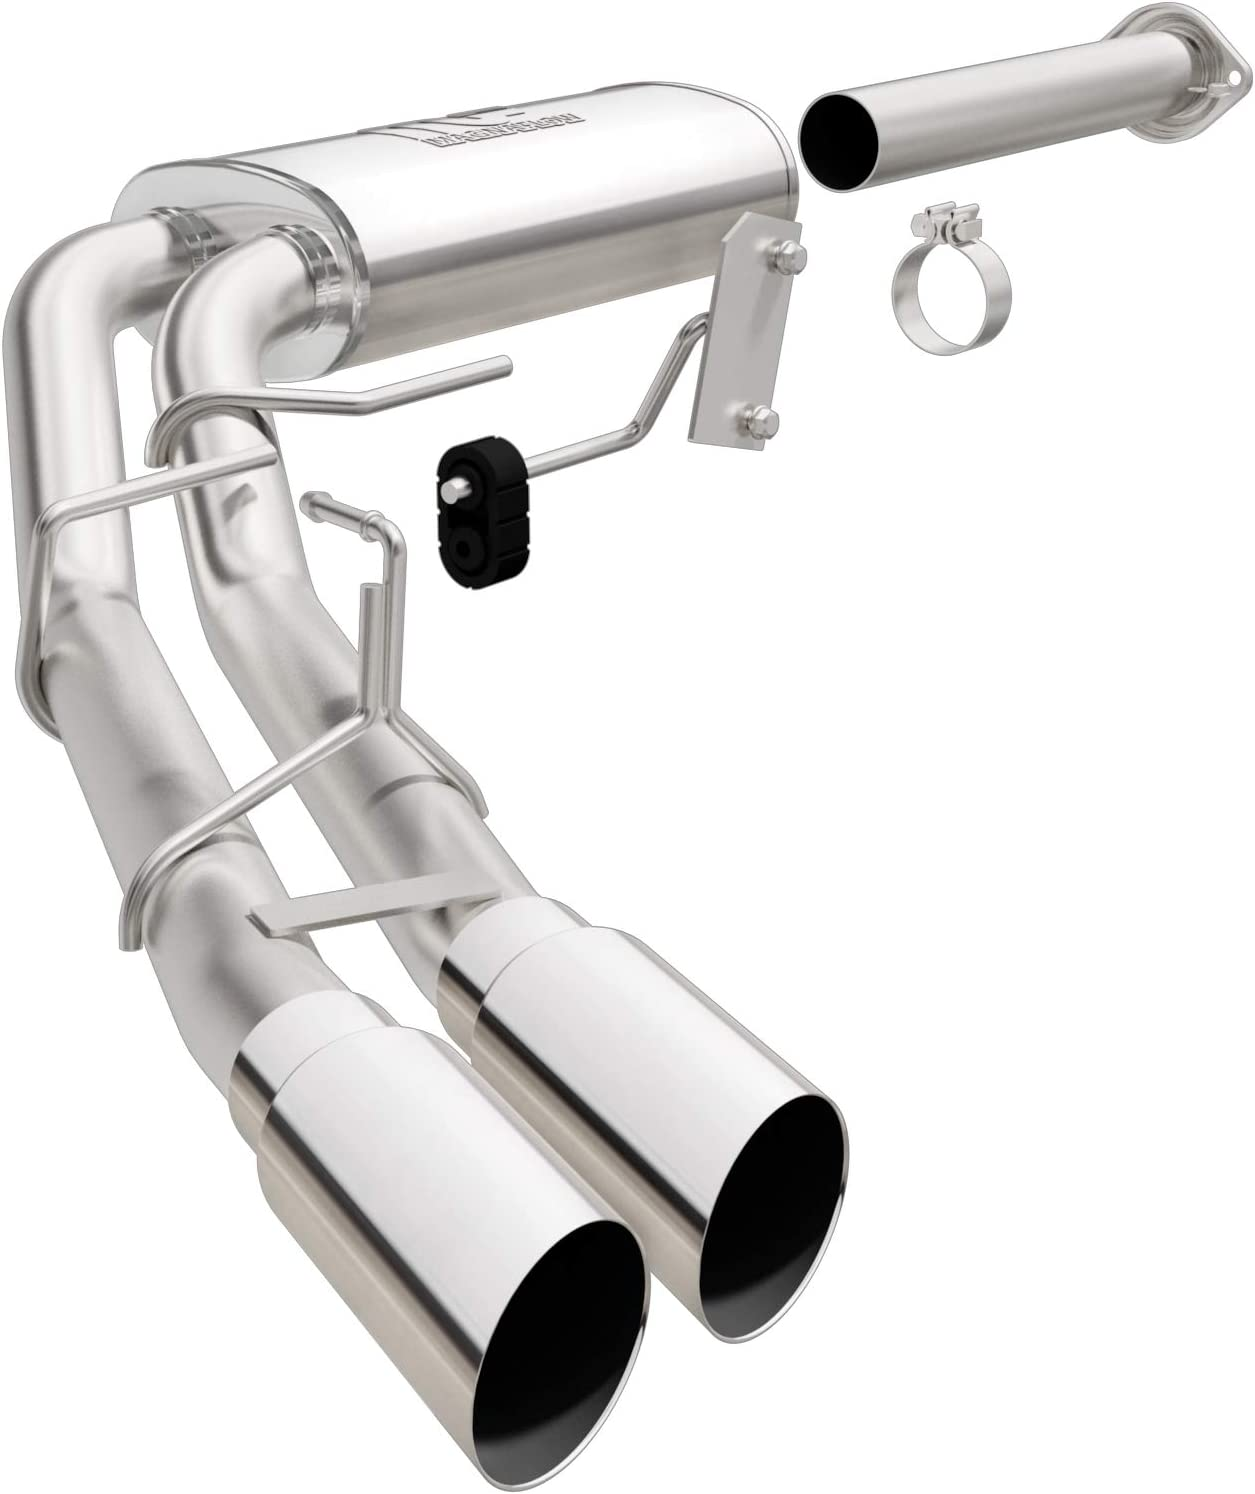 MagnaFlow 19054 Cat-Back Exhaust System